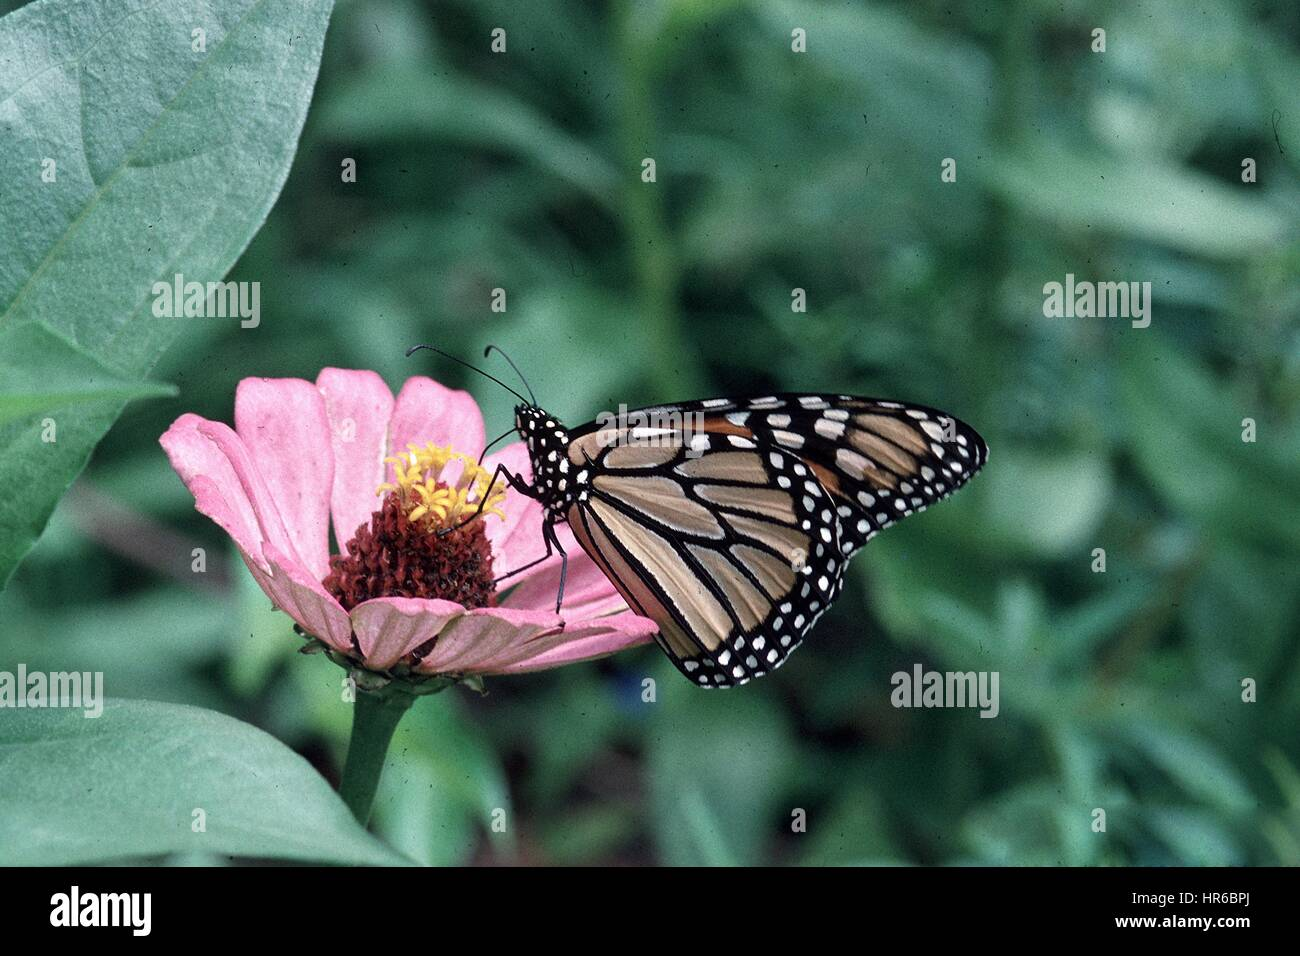 A Monarch Butterfly Collects Nectar From A Flower In The Peopleu0027s Garden,  Washington, D.C. Image Courtesy Jerry Payne/USDA, 2014